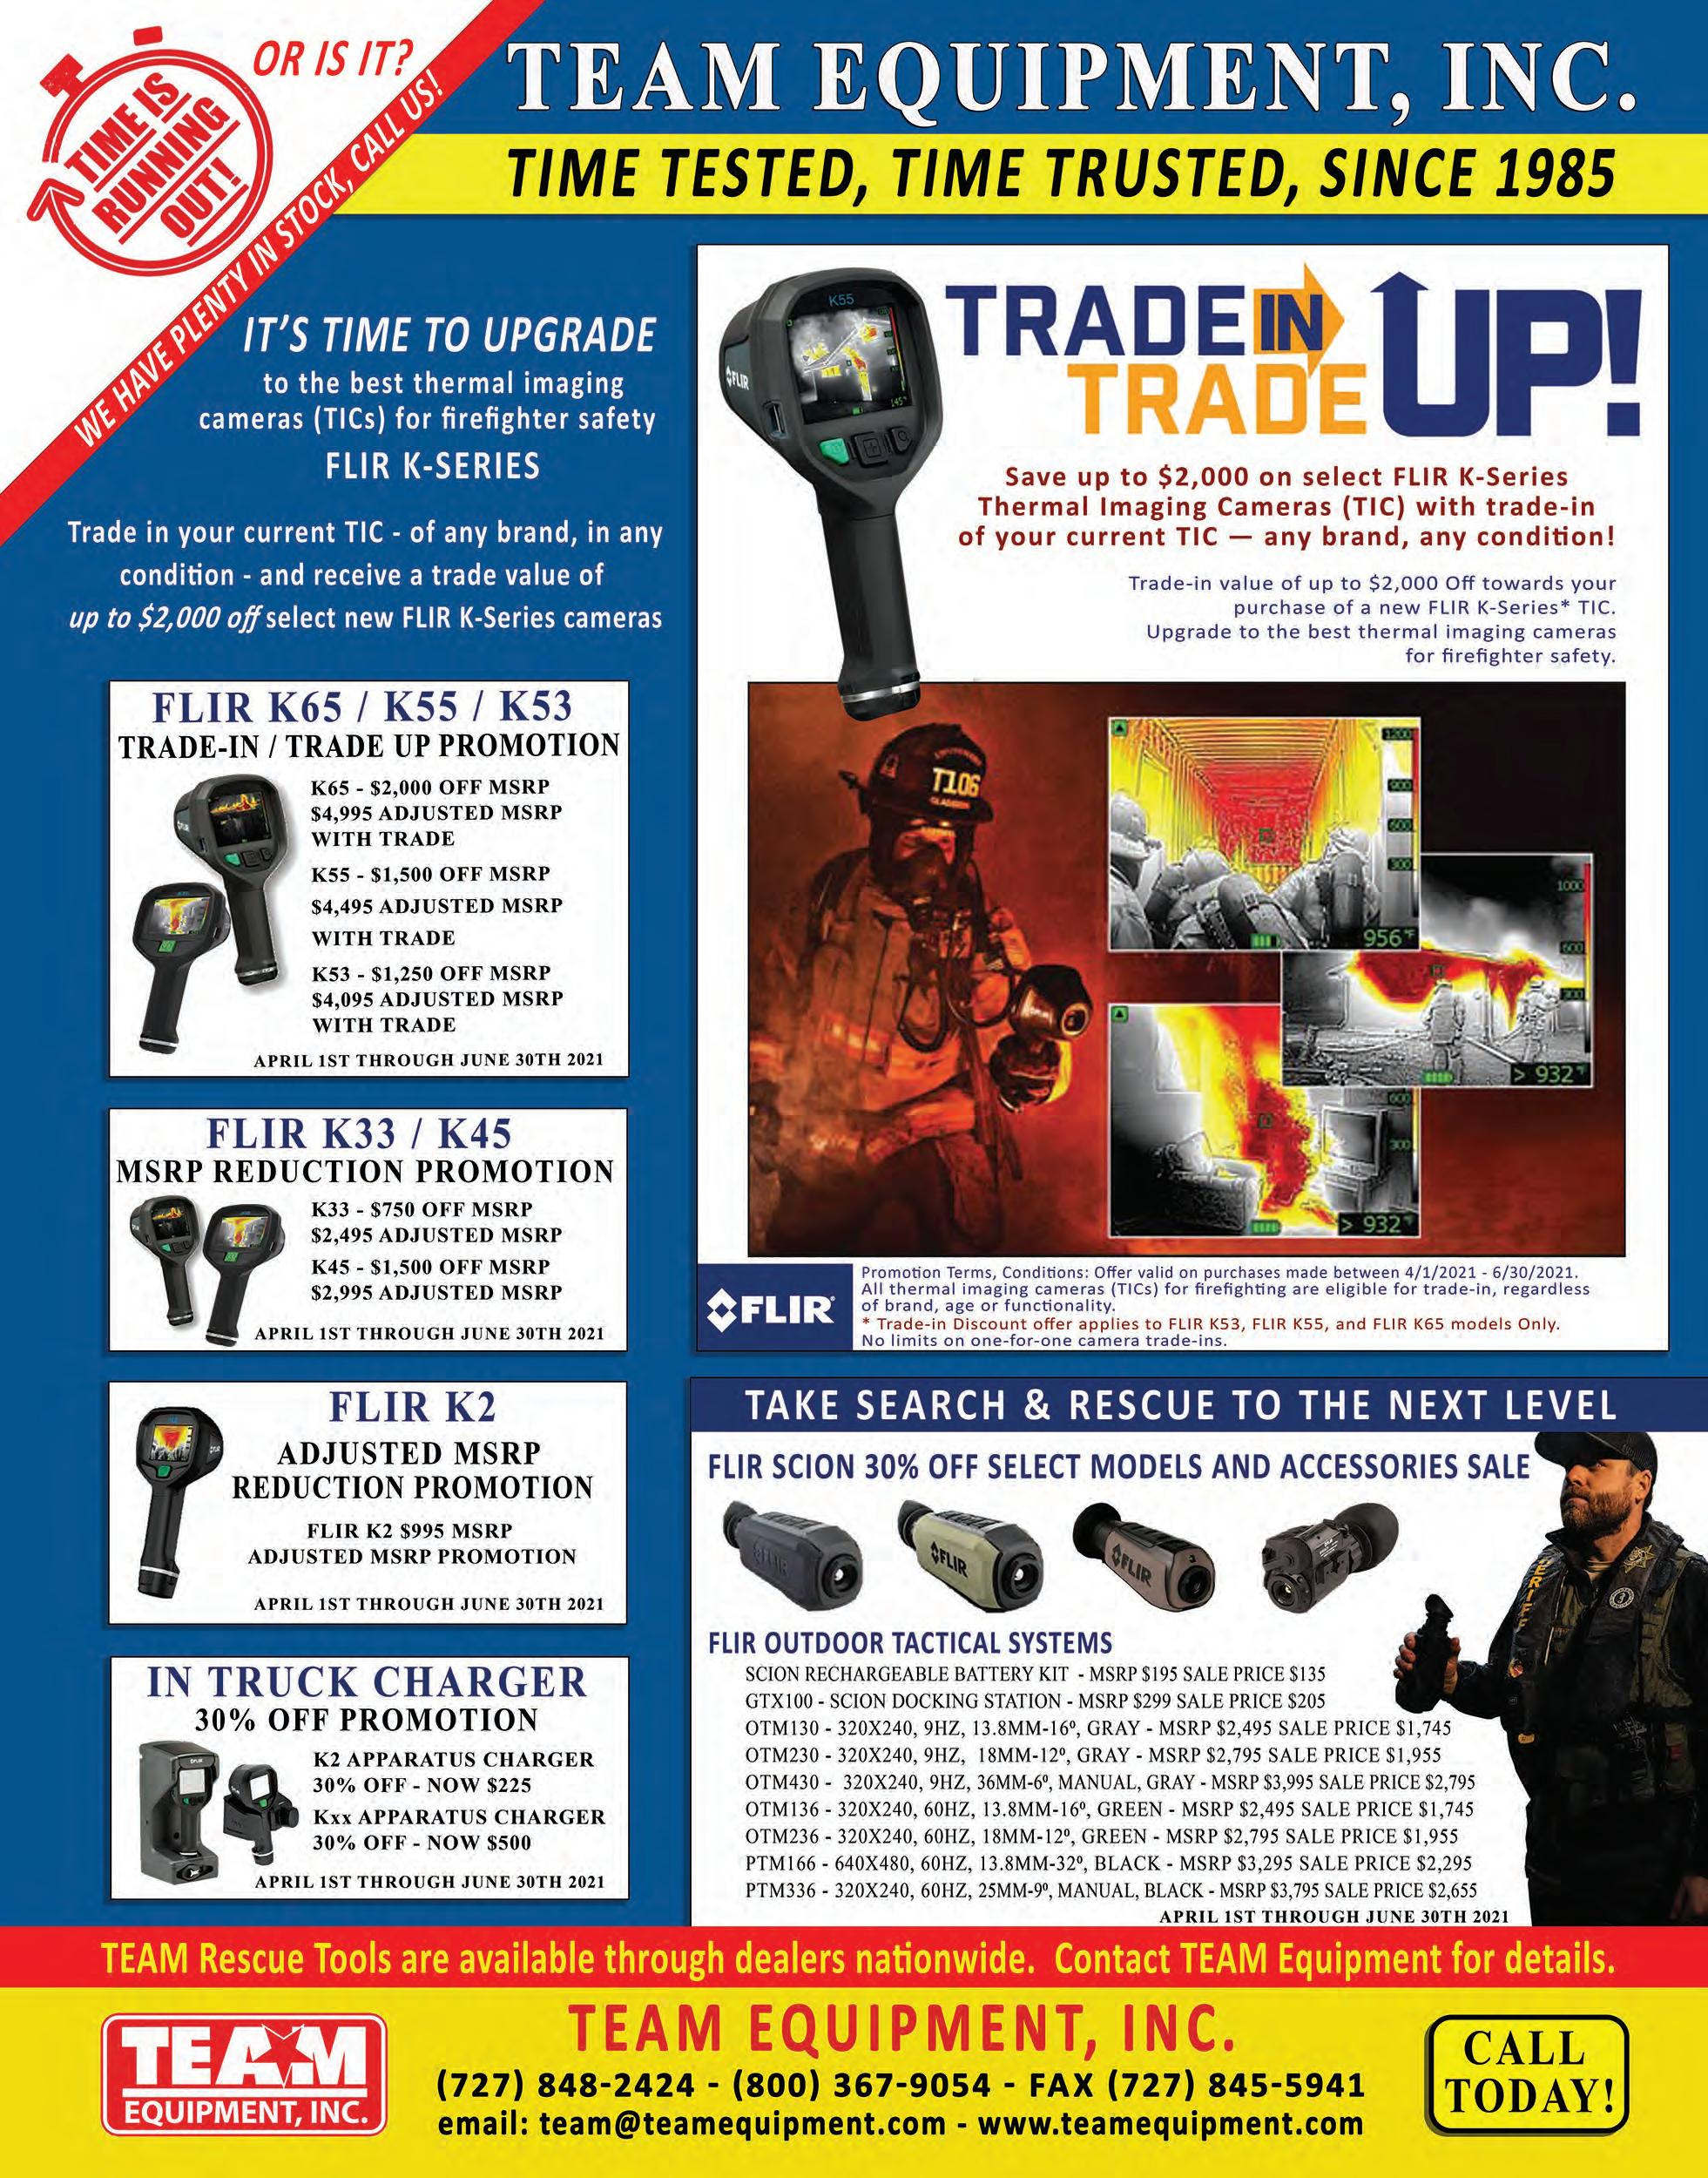 Page 14 of Team Equipment, Inc